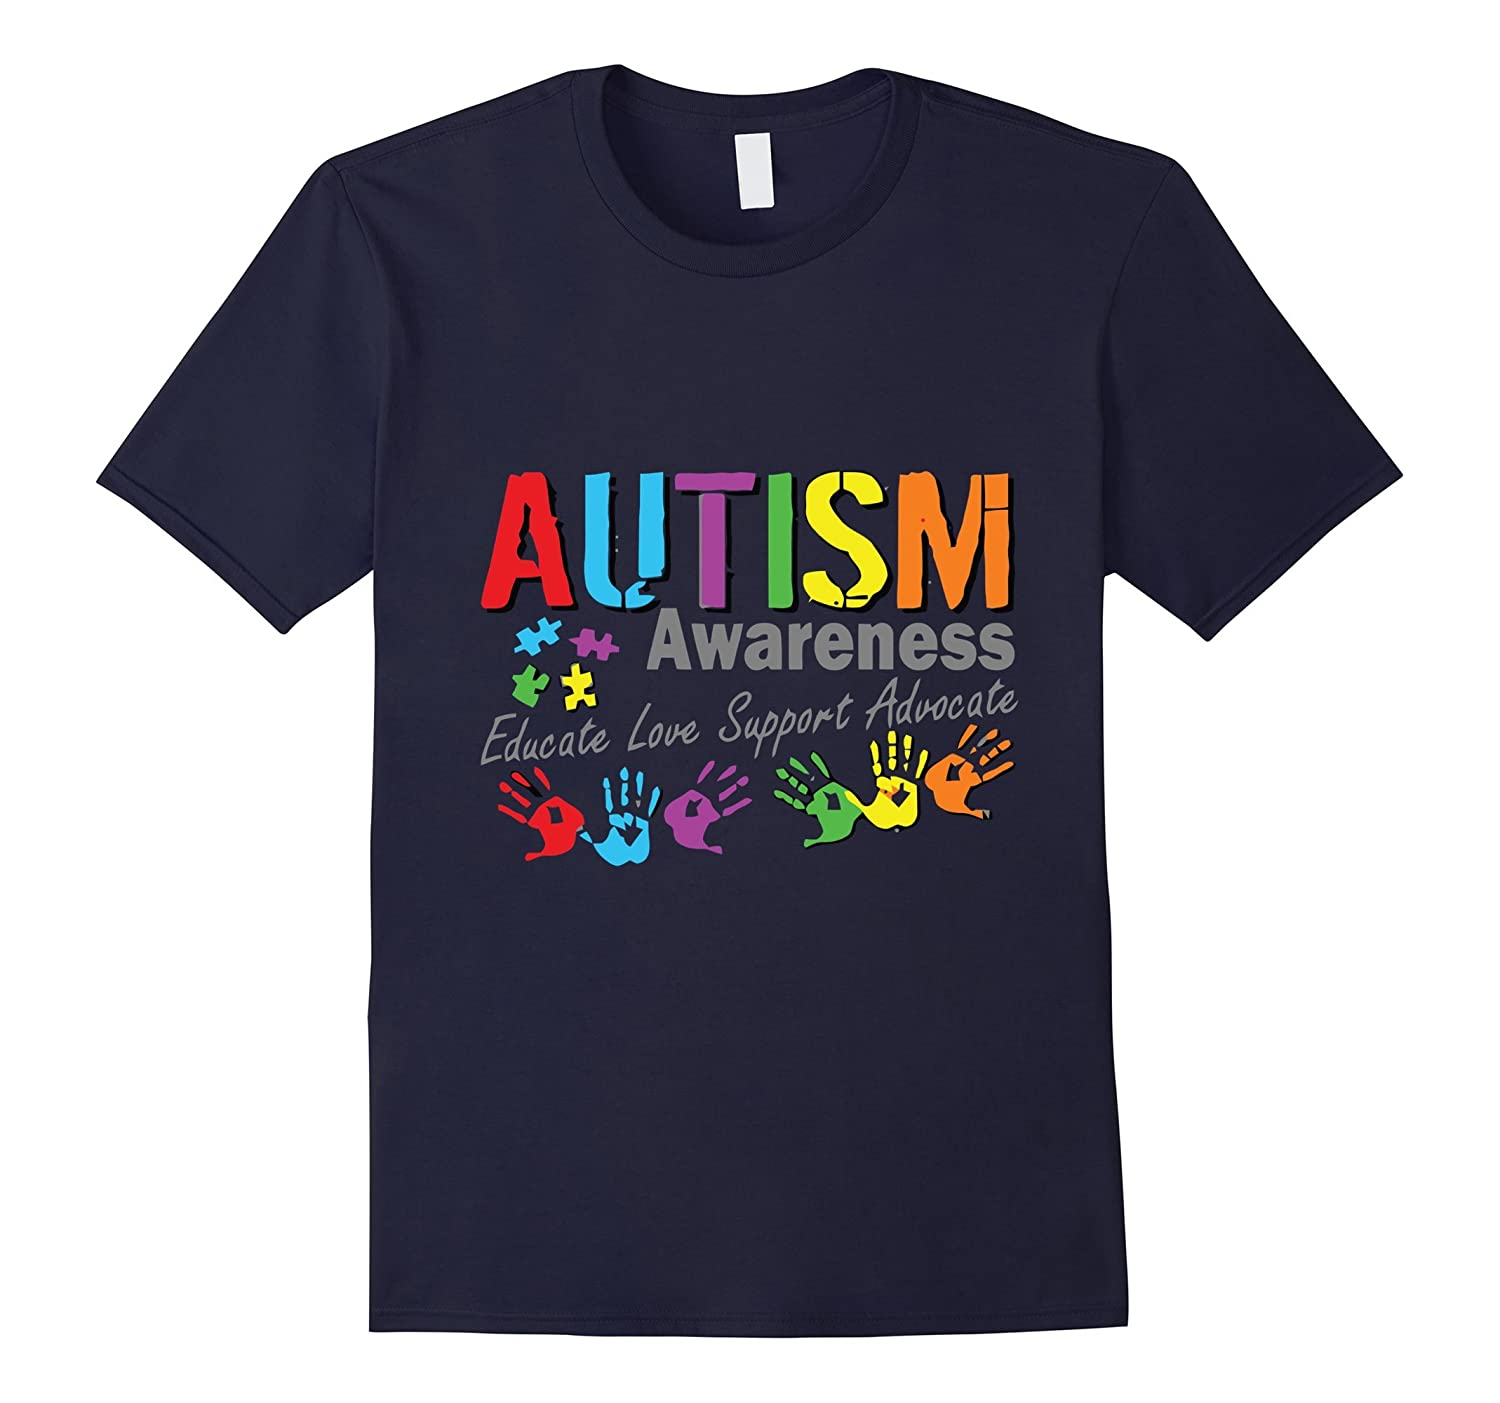 Autism Awareness Educate Love Support Advocate T-Shirt-BN